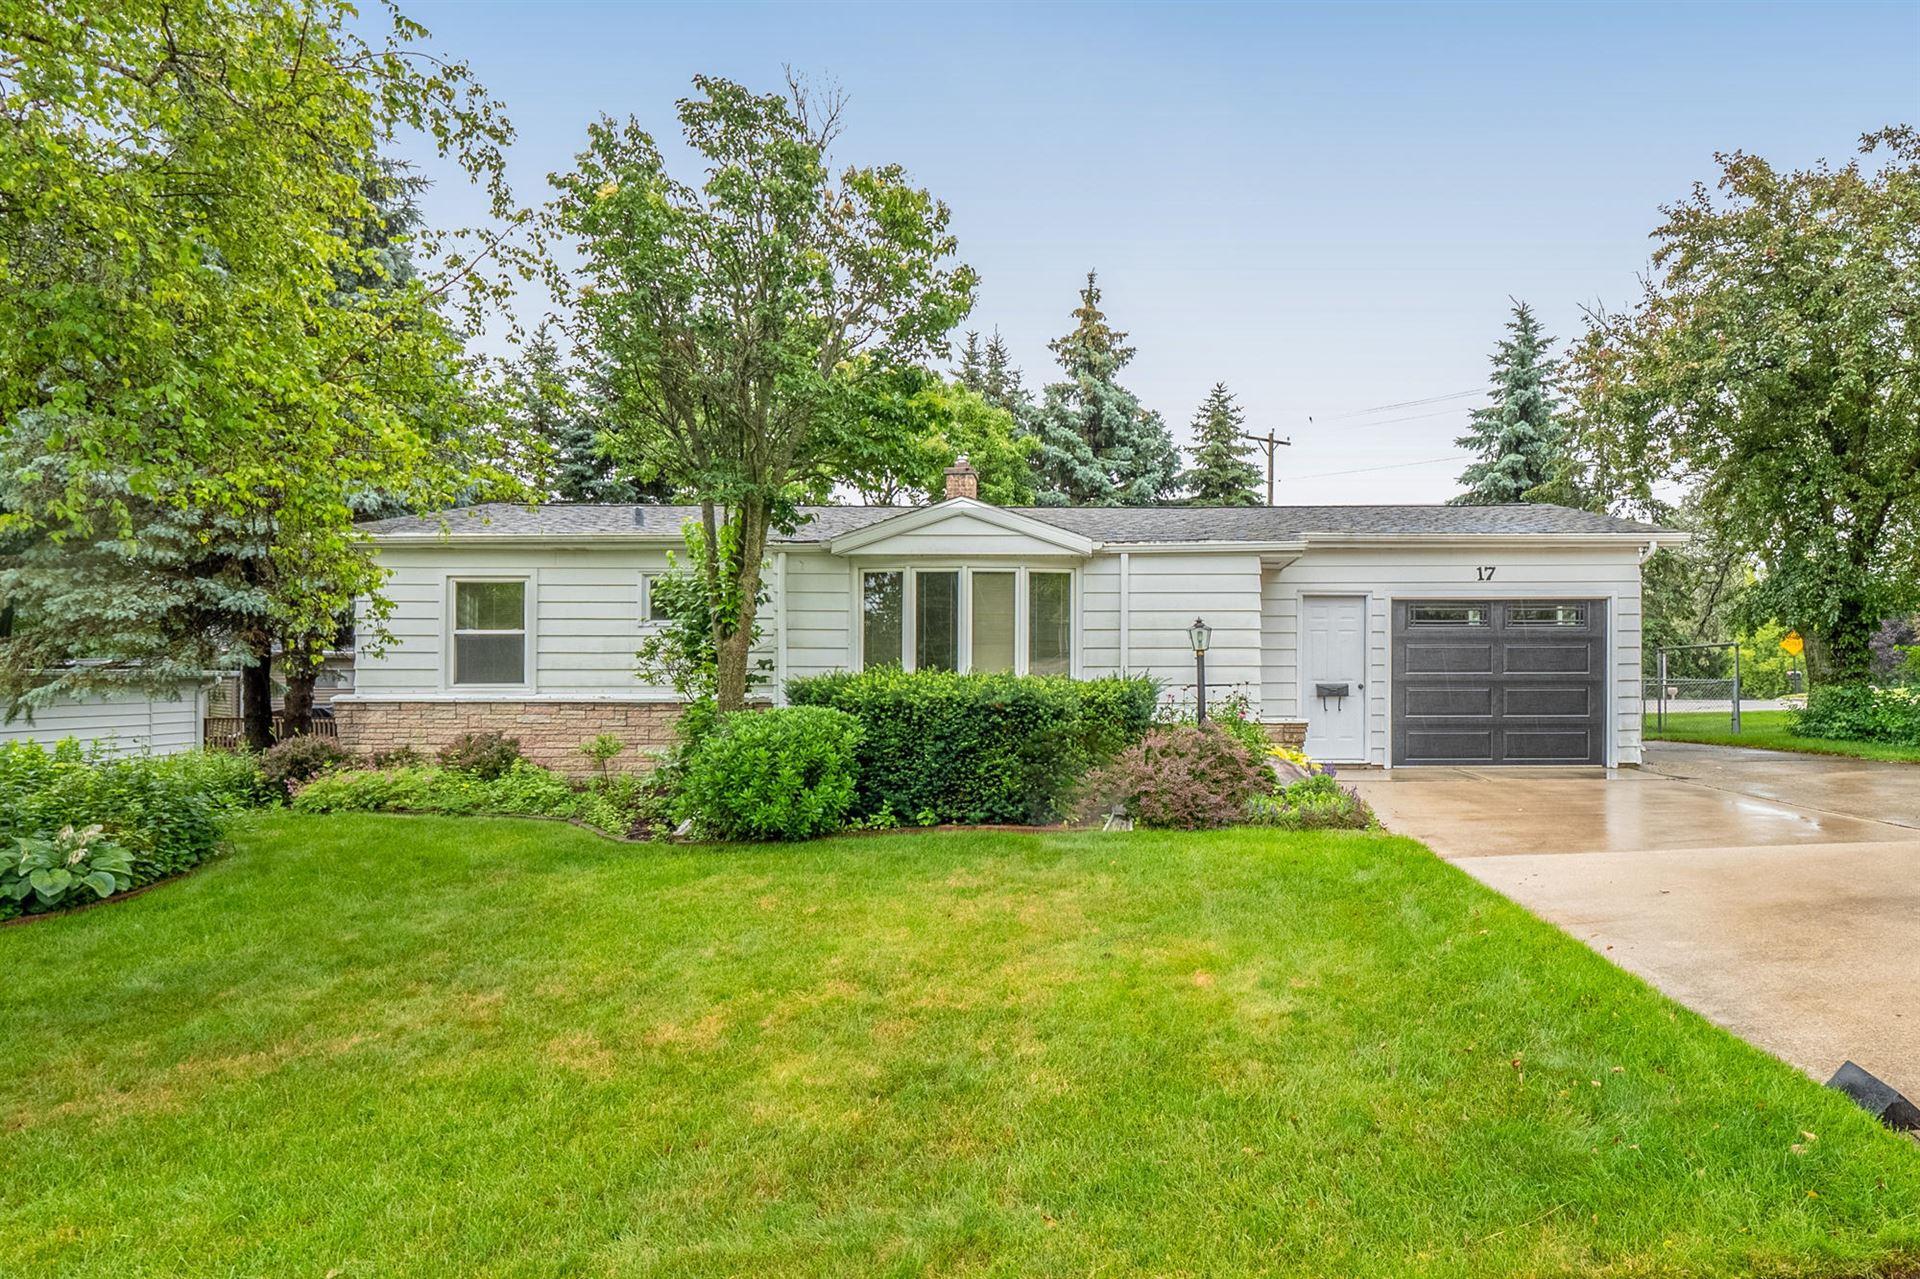 17 Fond Du Lac Ave, Plymouth, WI 53073 - MLS#: 1751424